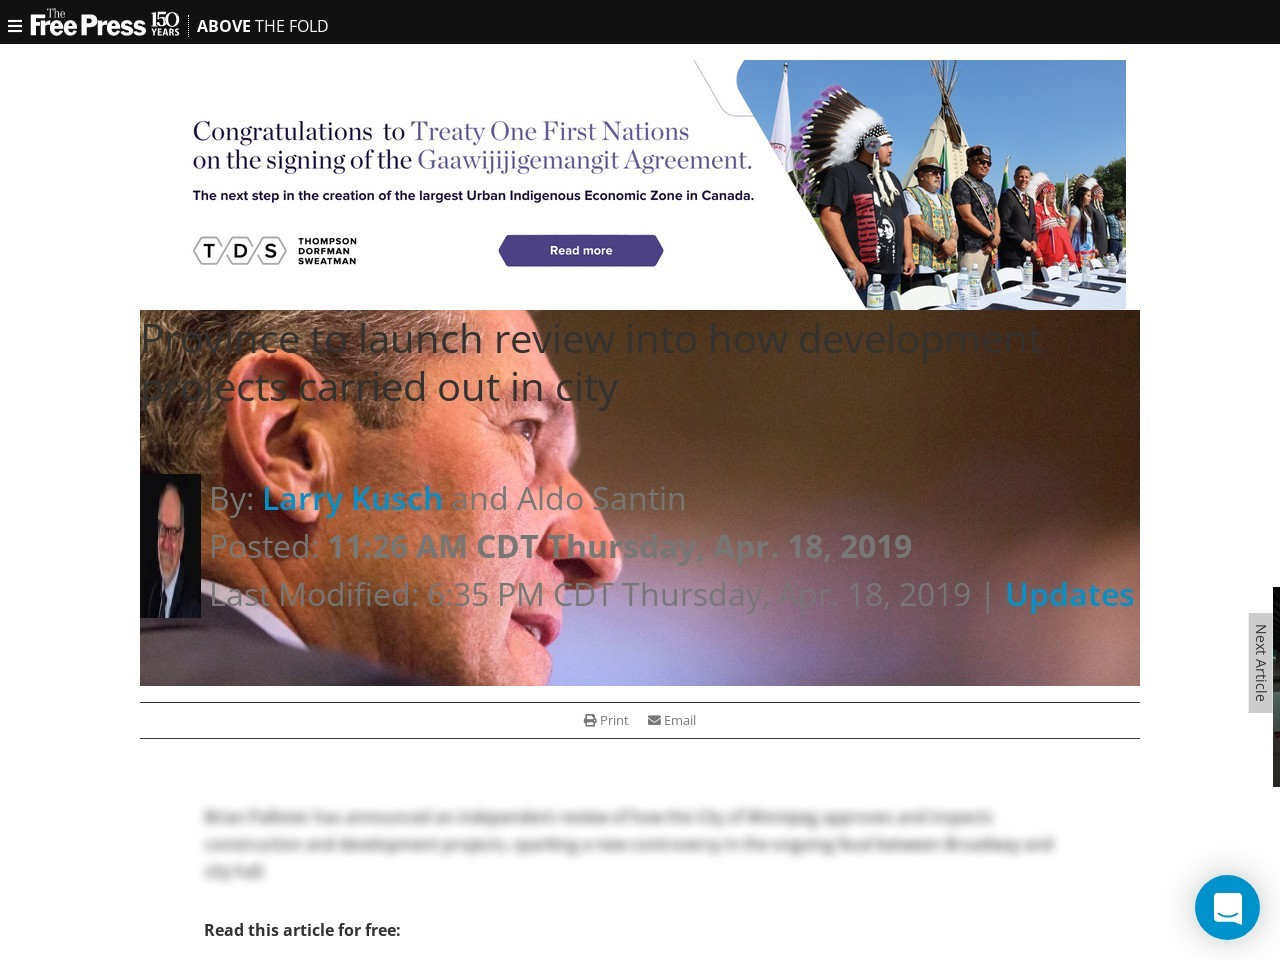 Province to launch review into how development projects carried out in city